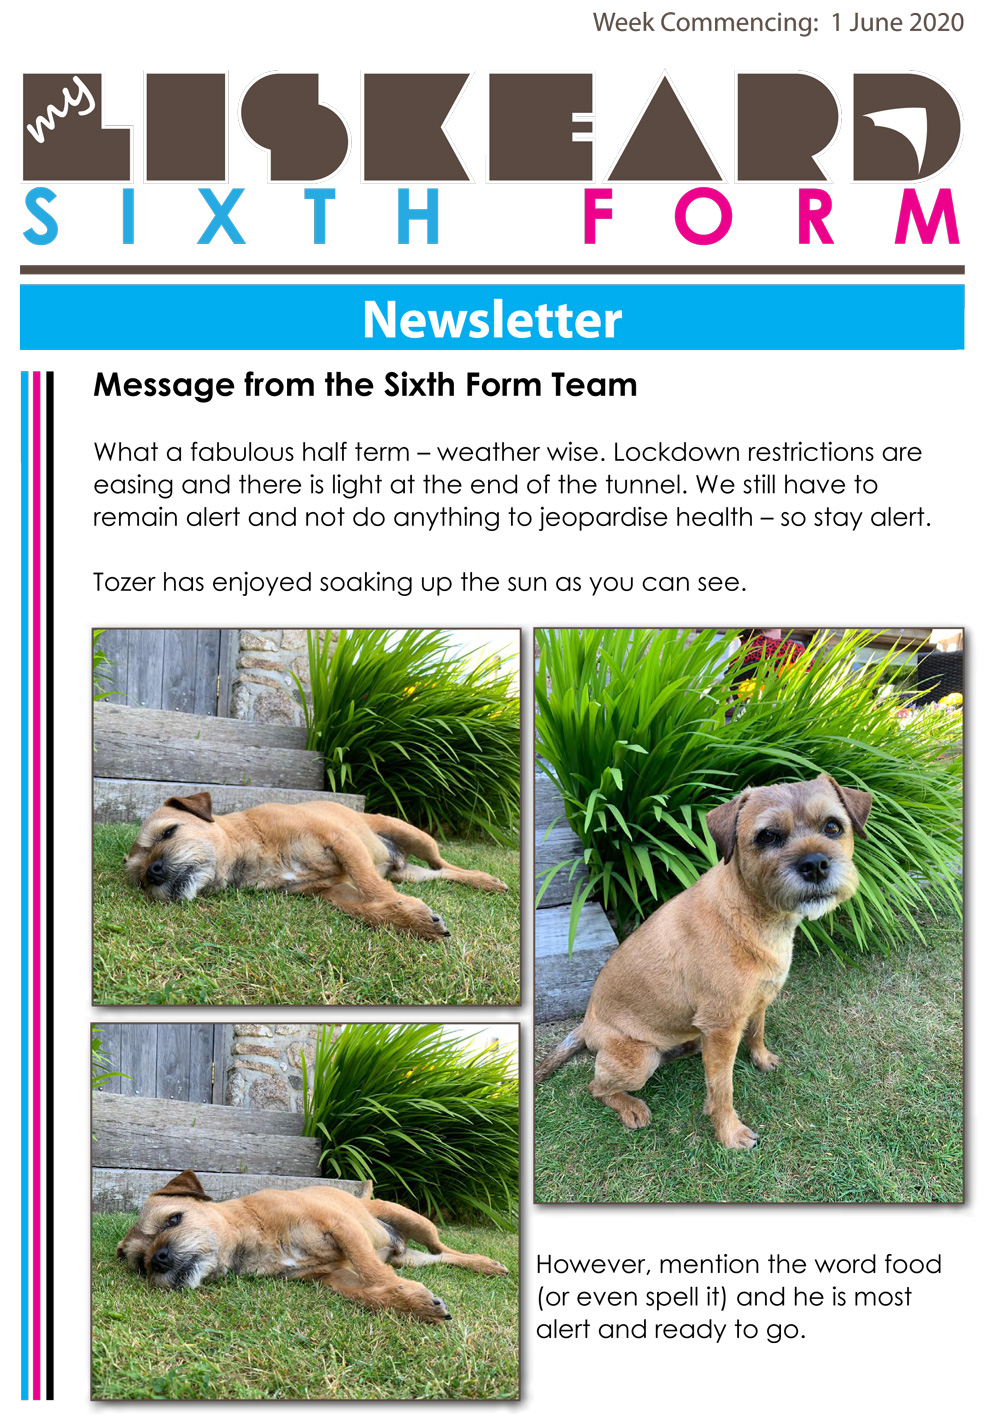 Sixth Form Newsletter 1 6 20 1